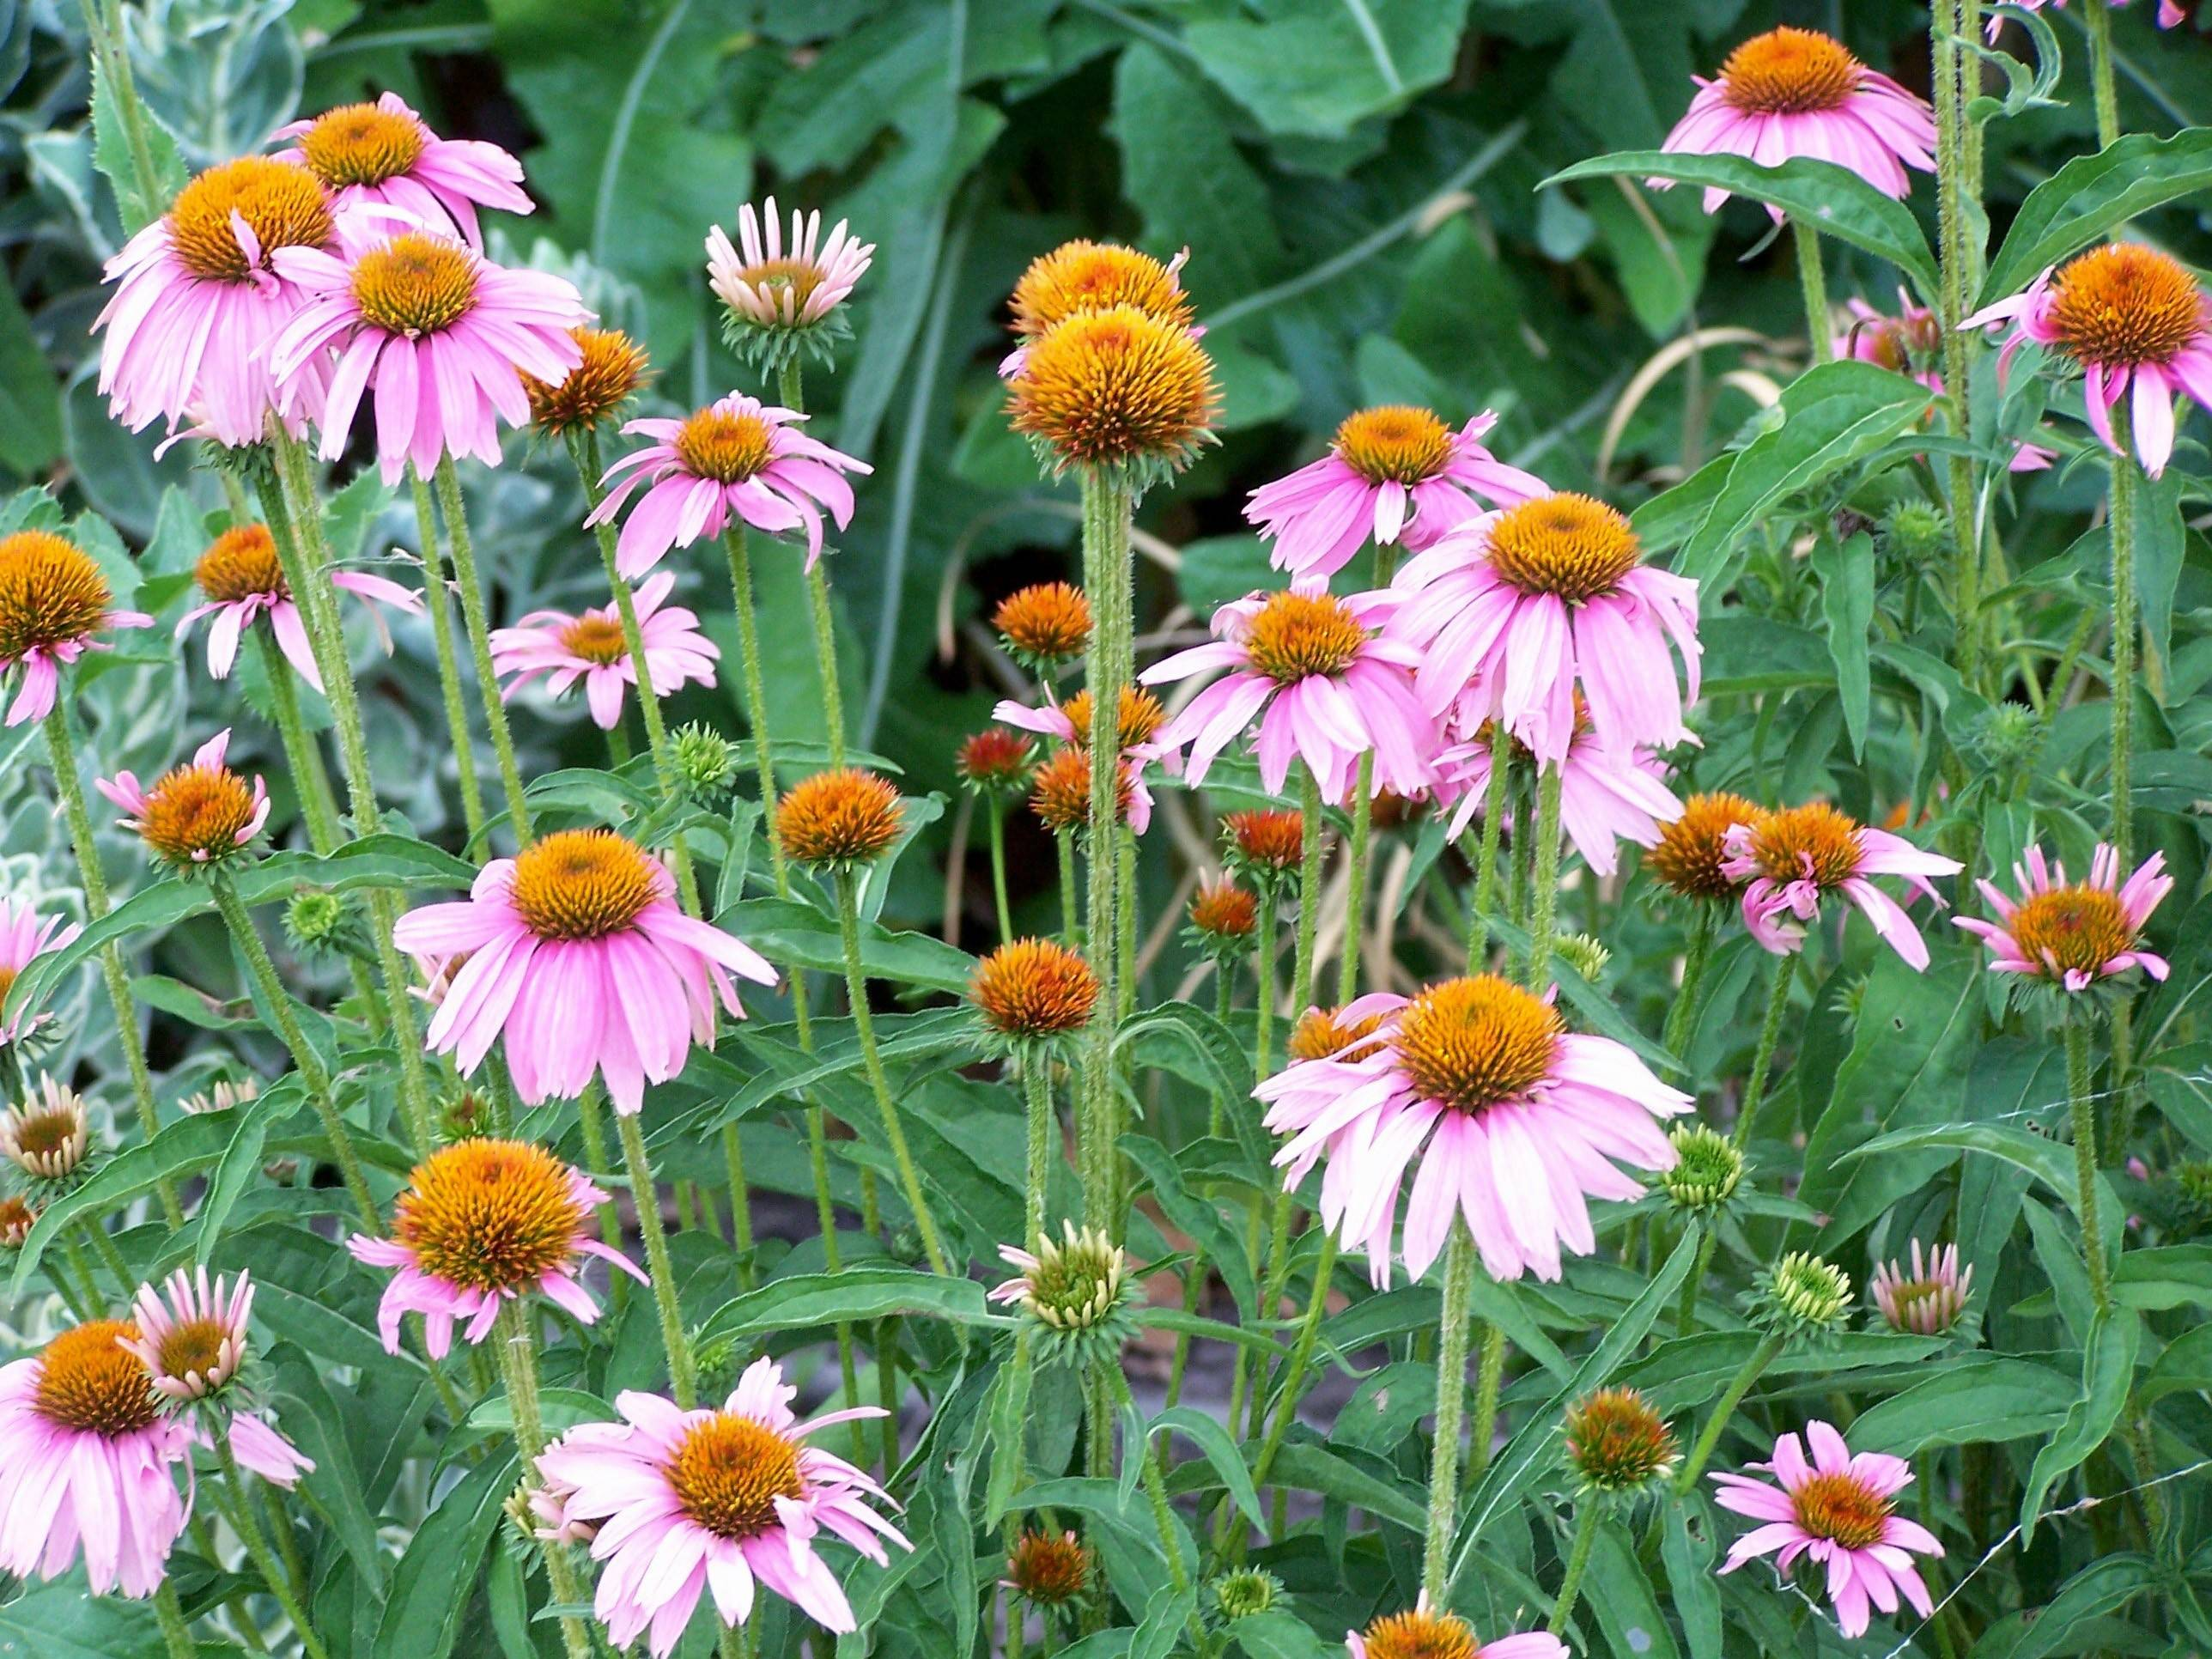 Butterflies and bees enjoy Magnus coneflowers as much as gardeners do.